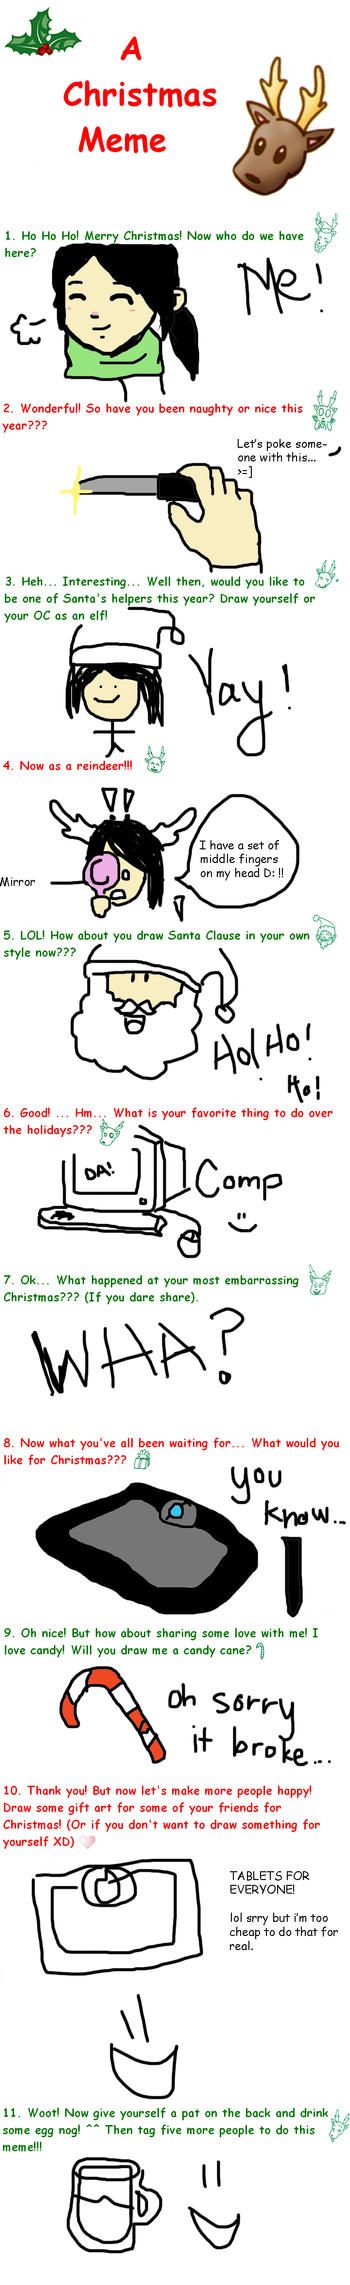 Christmas Meme by Mina321908